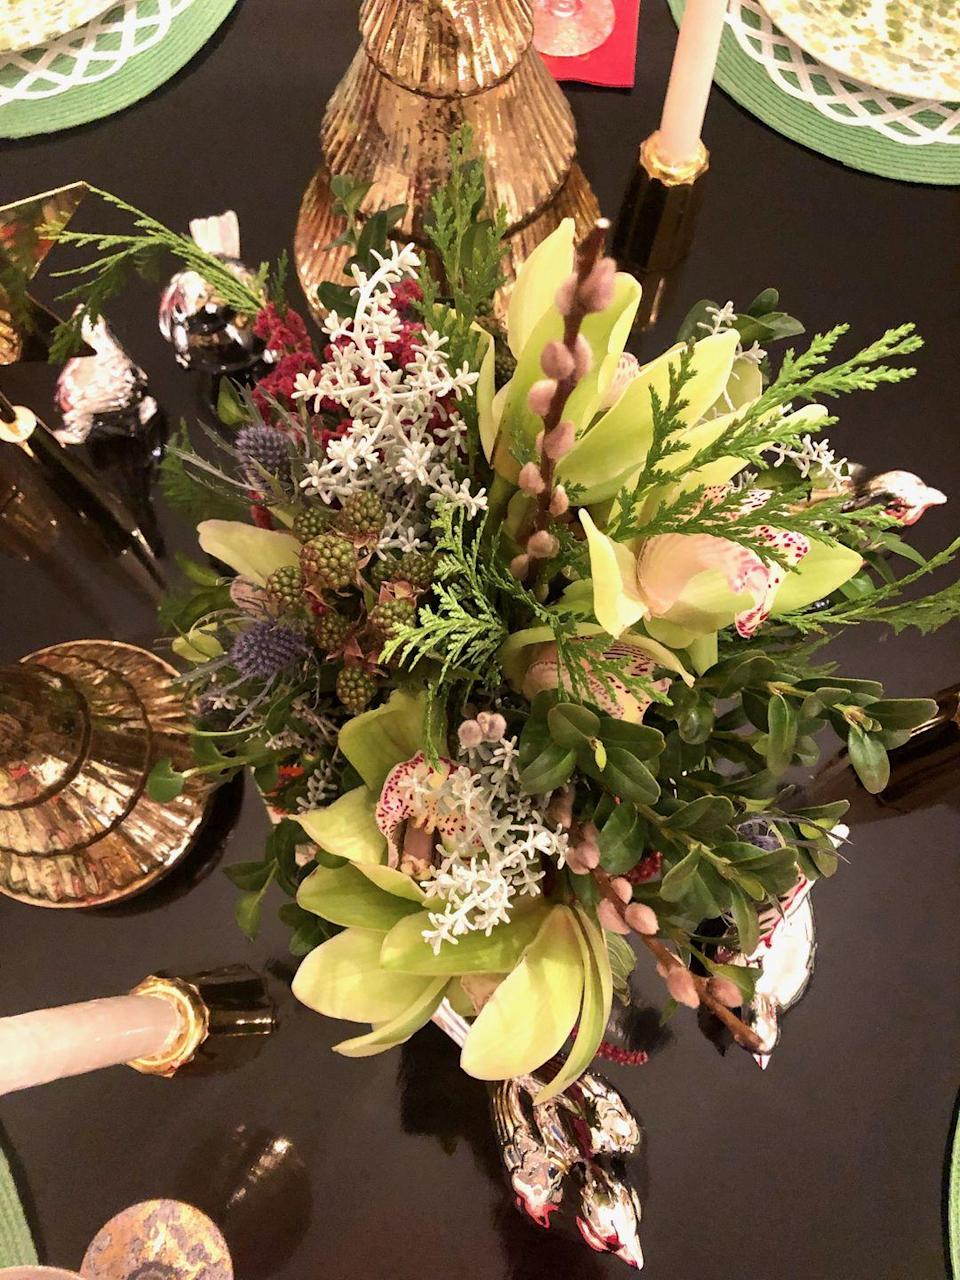 "<p>While you can never go wrong with a colorful floral arrangement for a holiday dinner, sticking to earth tones can be just as chic. ""A bountiful holiday meal is often full of vibrant and fresh color,"" says Amanda Reynal. ""By using a more earthy and neutral palette in the centerpiece and table, the scheme complements the beautiful harvest instead of competing with it.""<em><br></em></p><p><em><a href=""http://www.reynalinteriors.com/"" rel=""nofollow noopener"" target=""_blank"" data-ylk=""slk:Via Amanda Reynal"" class=""link rapid-noclick-resp"">Via Amanda Reynal</a></em><br></p>"